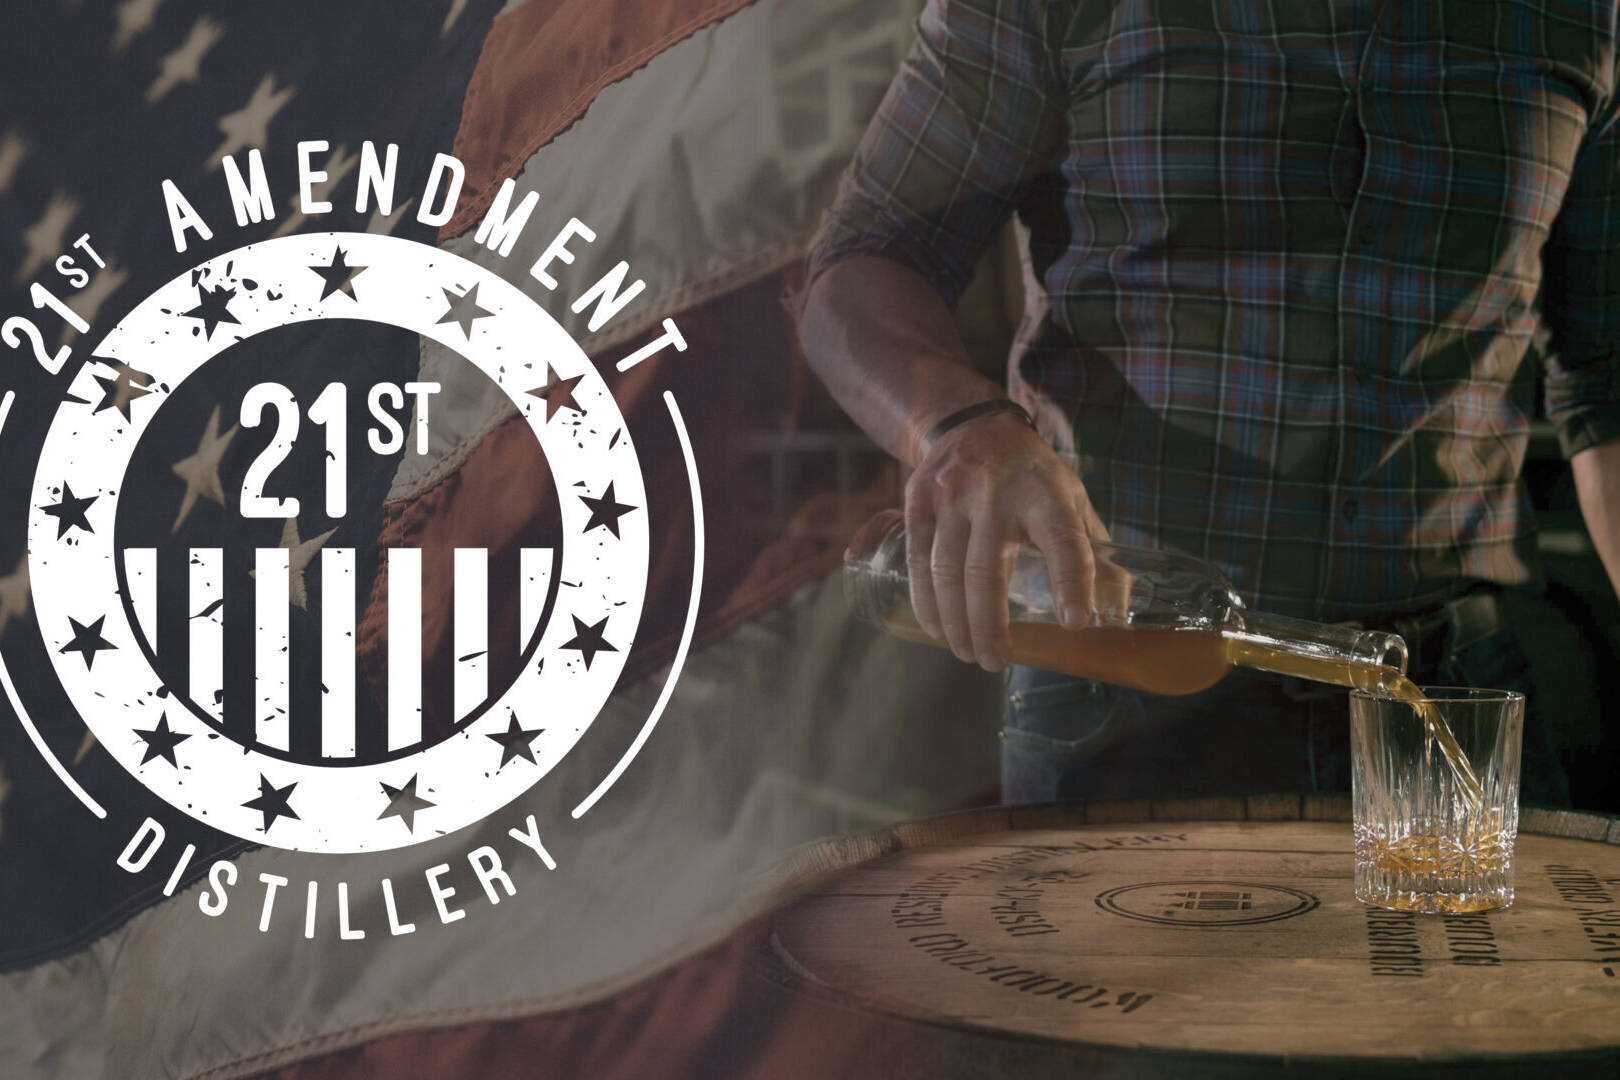 A brand video featuring 21st Amendment Distillery in Vero Beach, Florida produced by our professional video services.